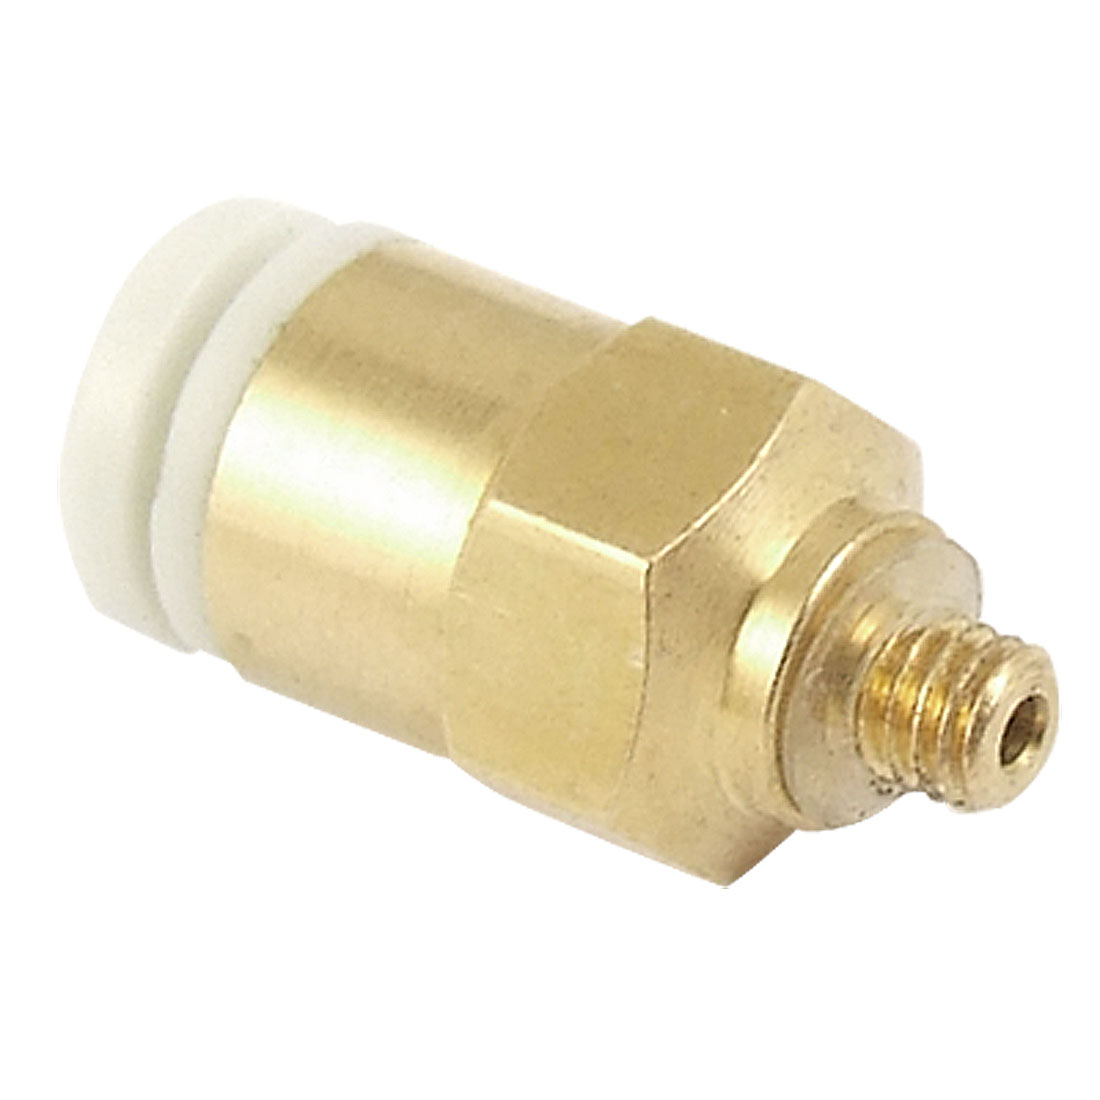 Pneumatic Pipe Connect 3mm Threaded Brass Quick Fitting